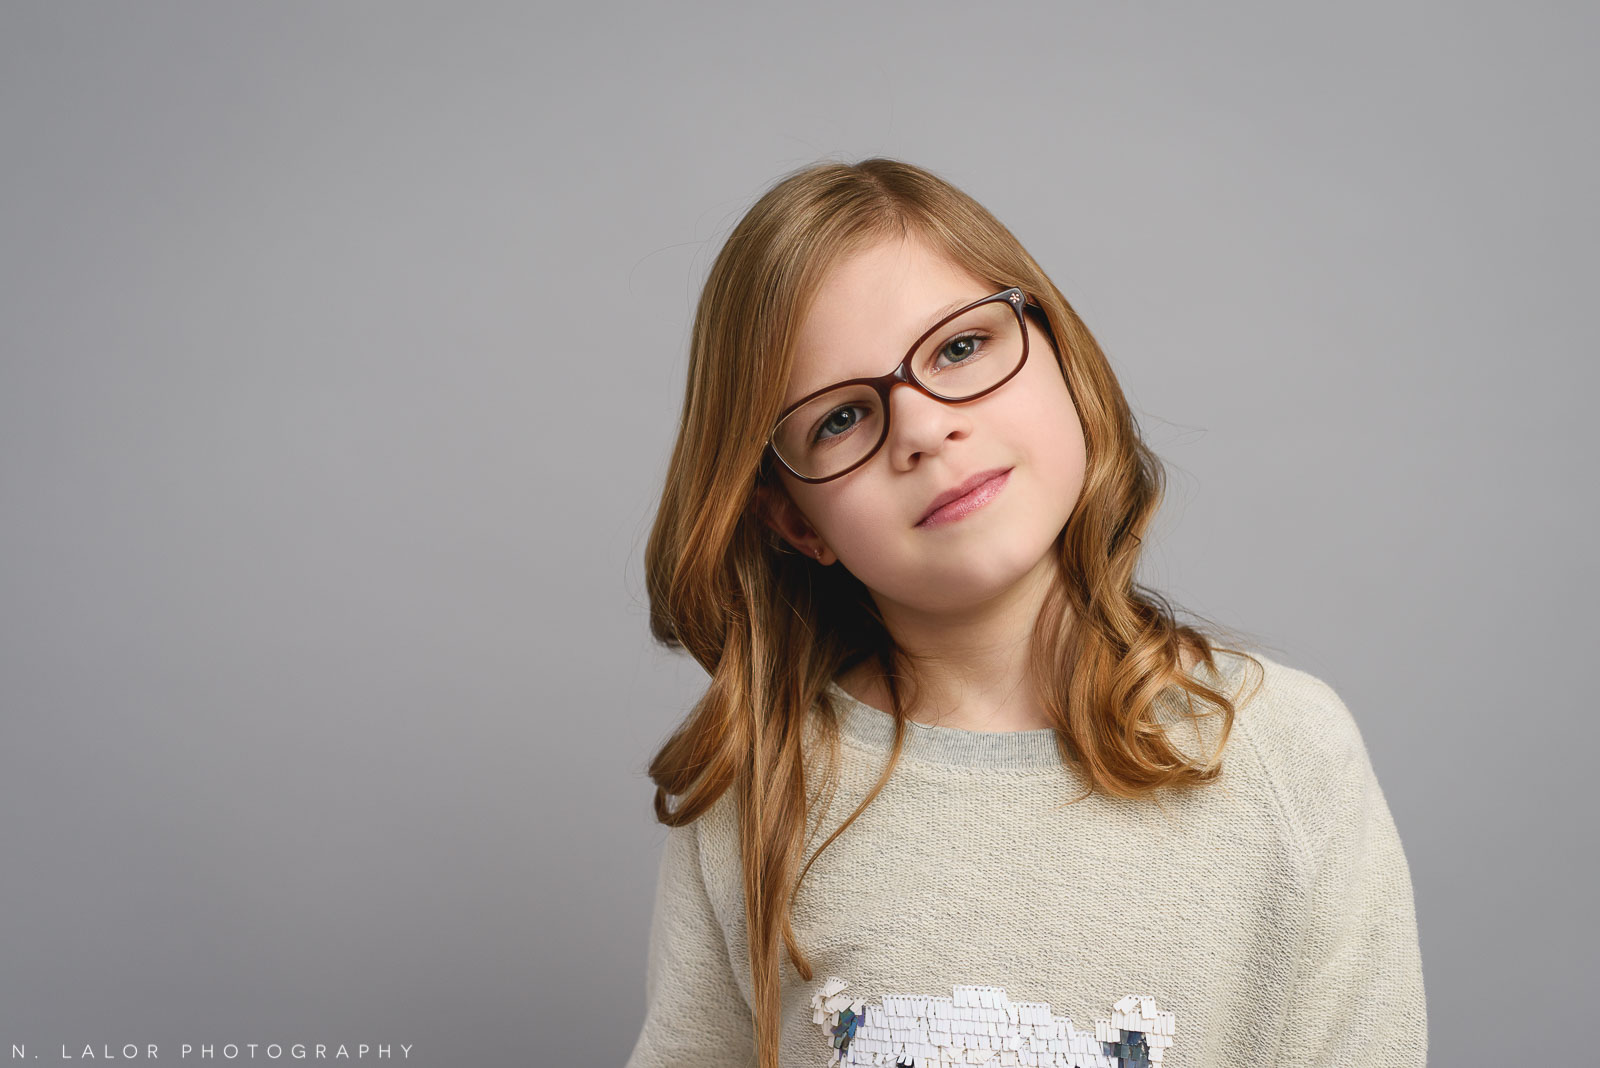 Deep in thought. Tween photo session with N. Lalor Photography. Studio located in Greenwich, Connecticut.